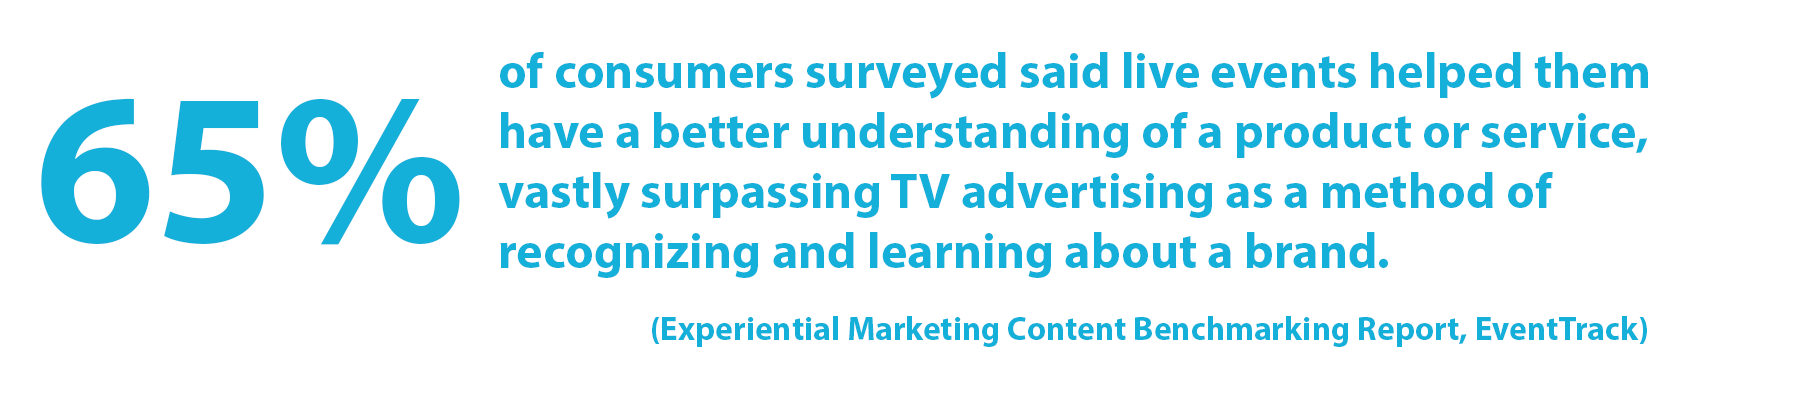 Statistic: 65% of the consumers surveyed said live events helped them have a better understanding of a product or service, vastly surpassing digital efforts and TV advertising as methods of recognizing and learning about a brand. (EventTrack)